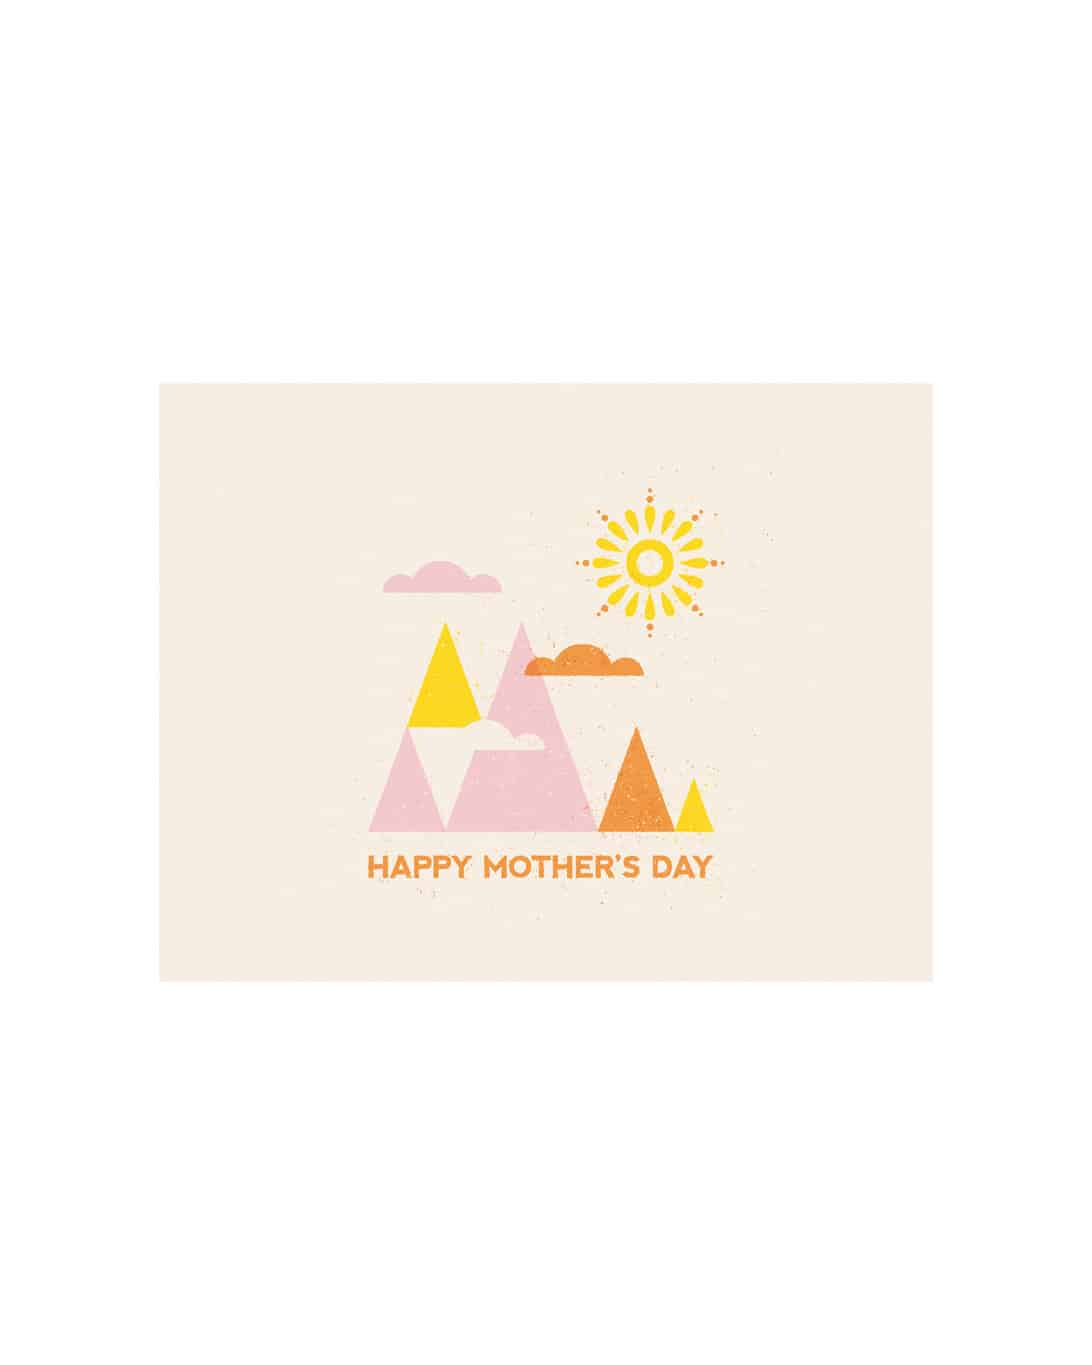 A white card that says happy mother's day with pink and orange mountains on it.